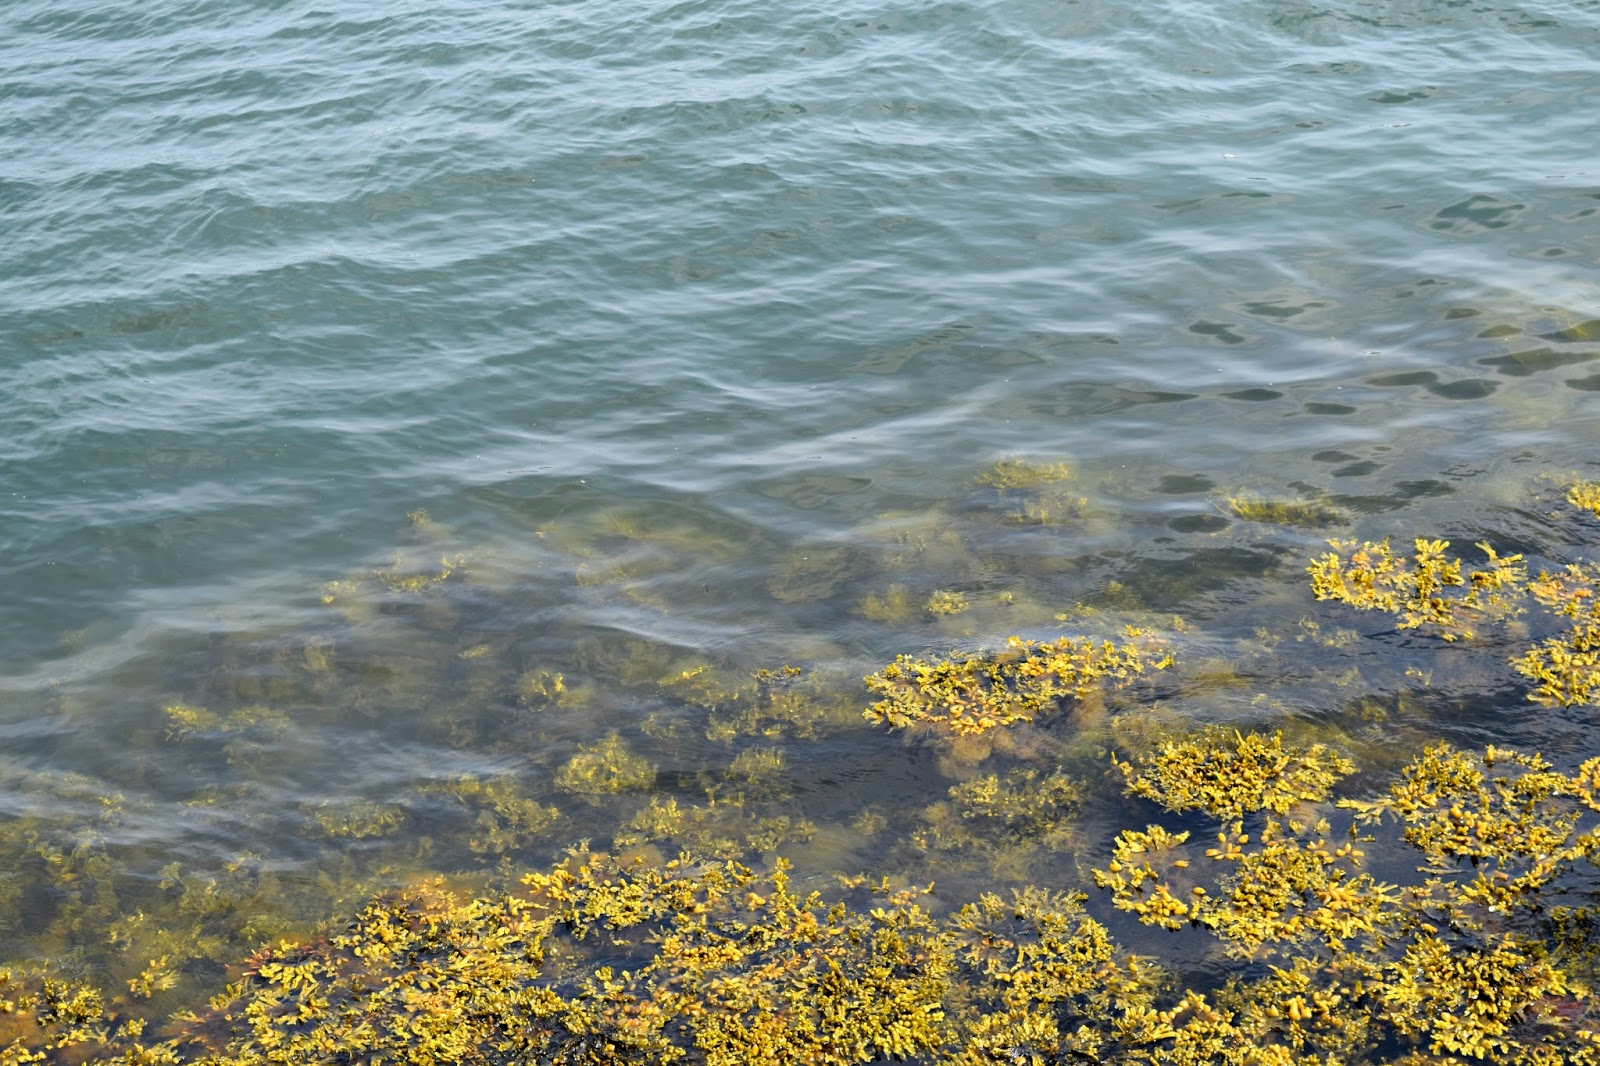 Clear water and Seaweed at the Harbour in Copenhagen